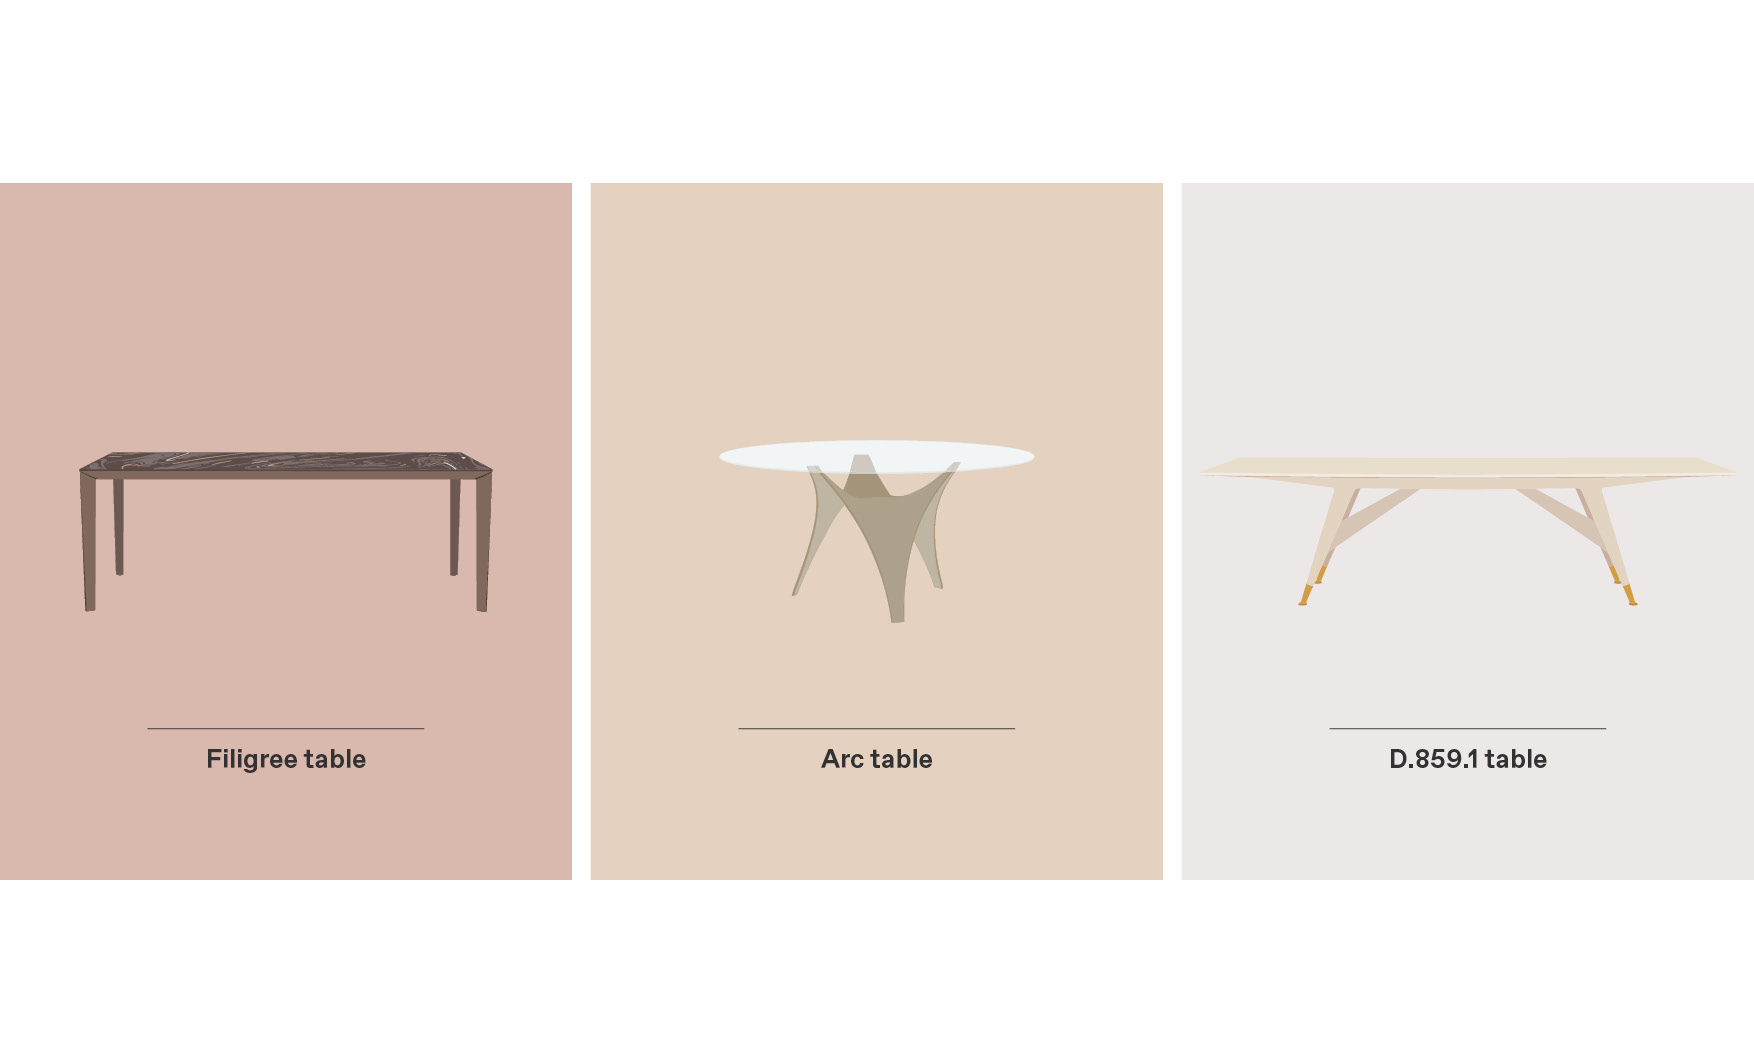 Filigree Table, Arc Table and D.859.1 Table are our selection of Molteni Dining Tables for Mix&Match by Esperiri